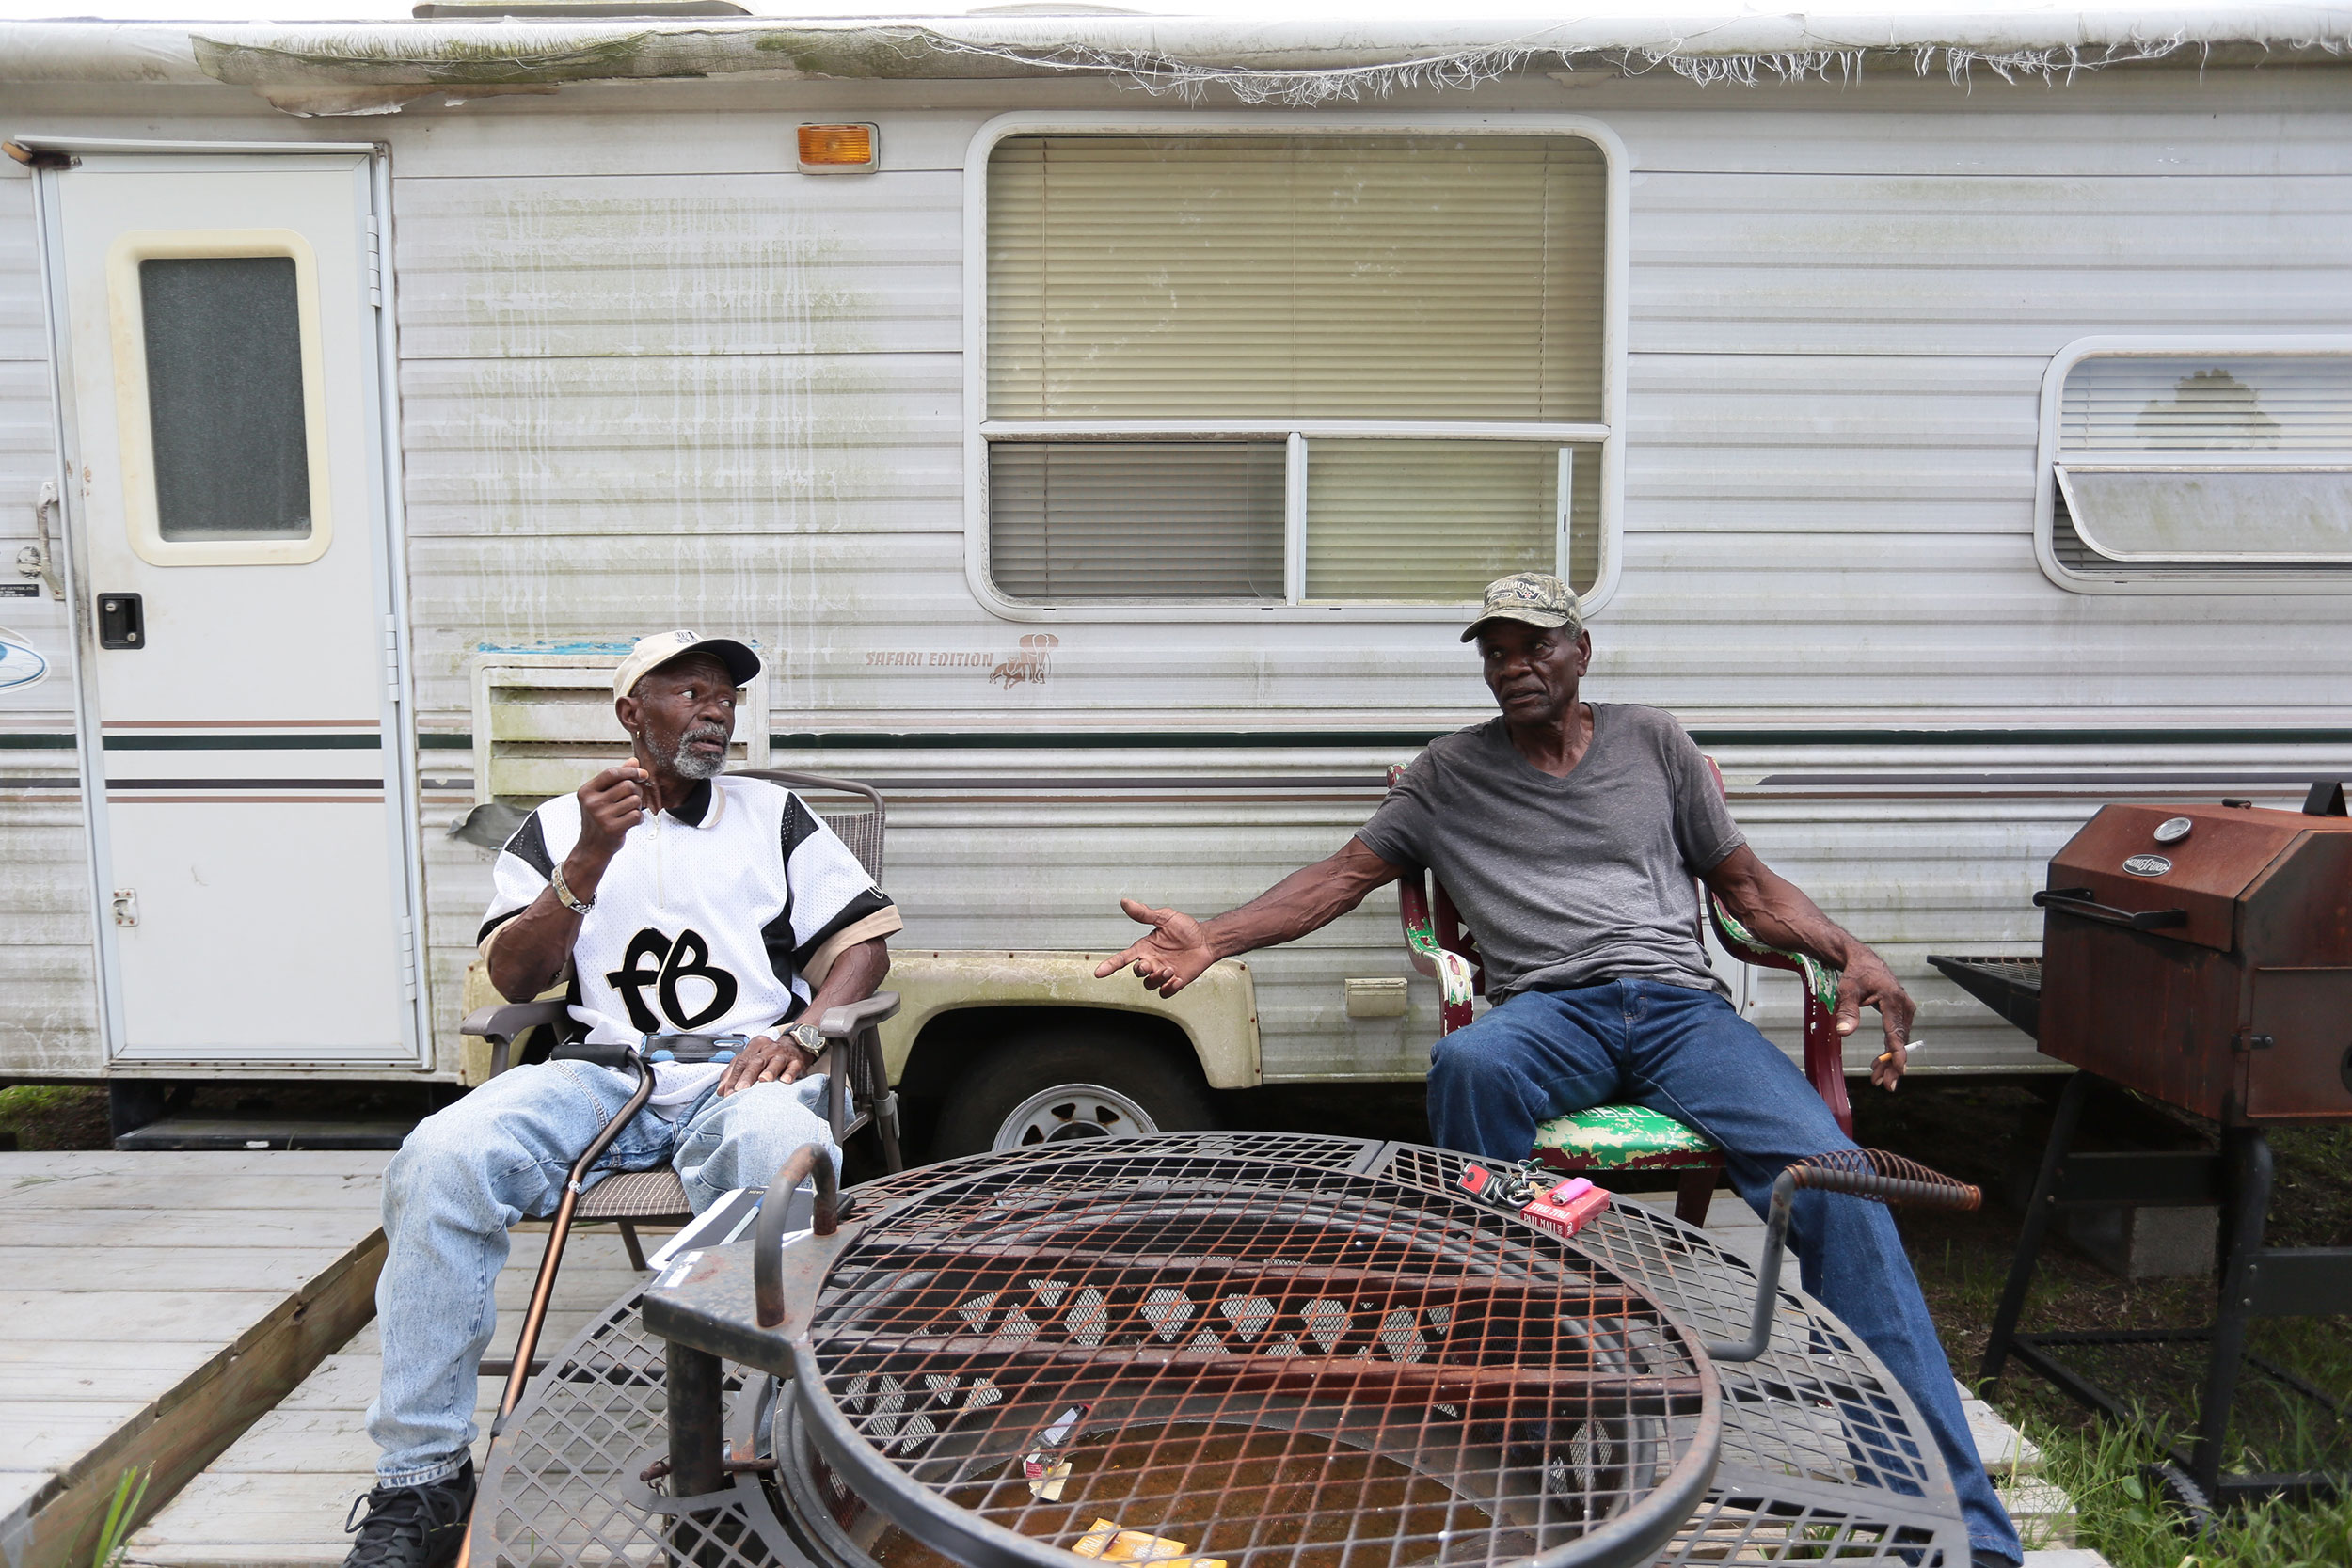 Henry Wilson, right, jacked up his storm-damaged house with his friend, Lester Owens, left. Wilson has lived in a trailer next to his house in Port Arthur for the past two years.